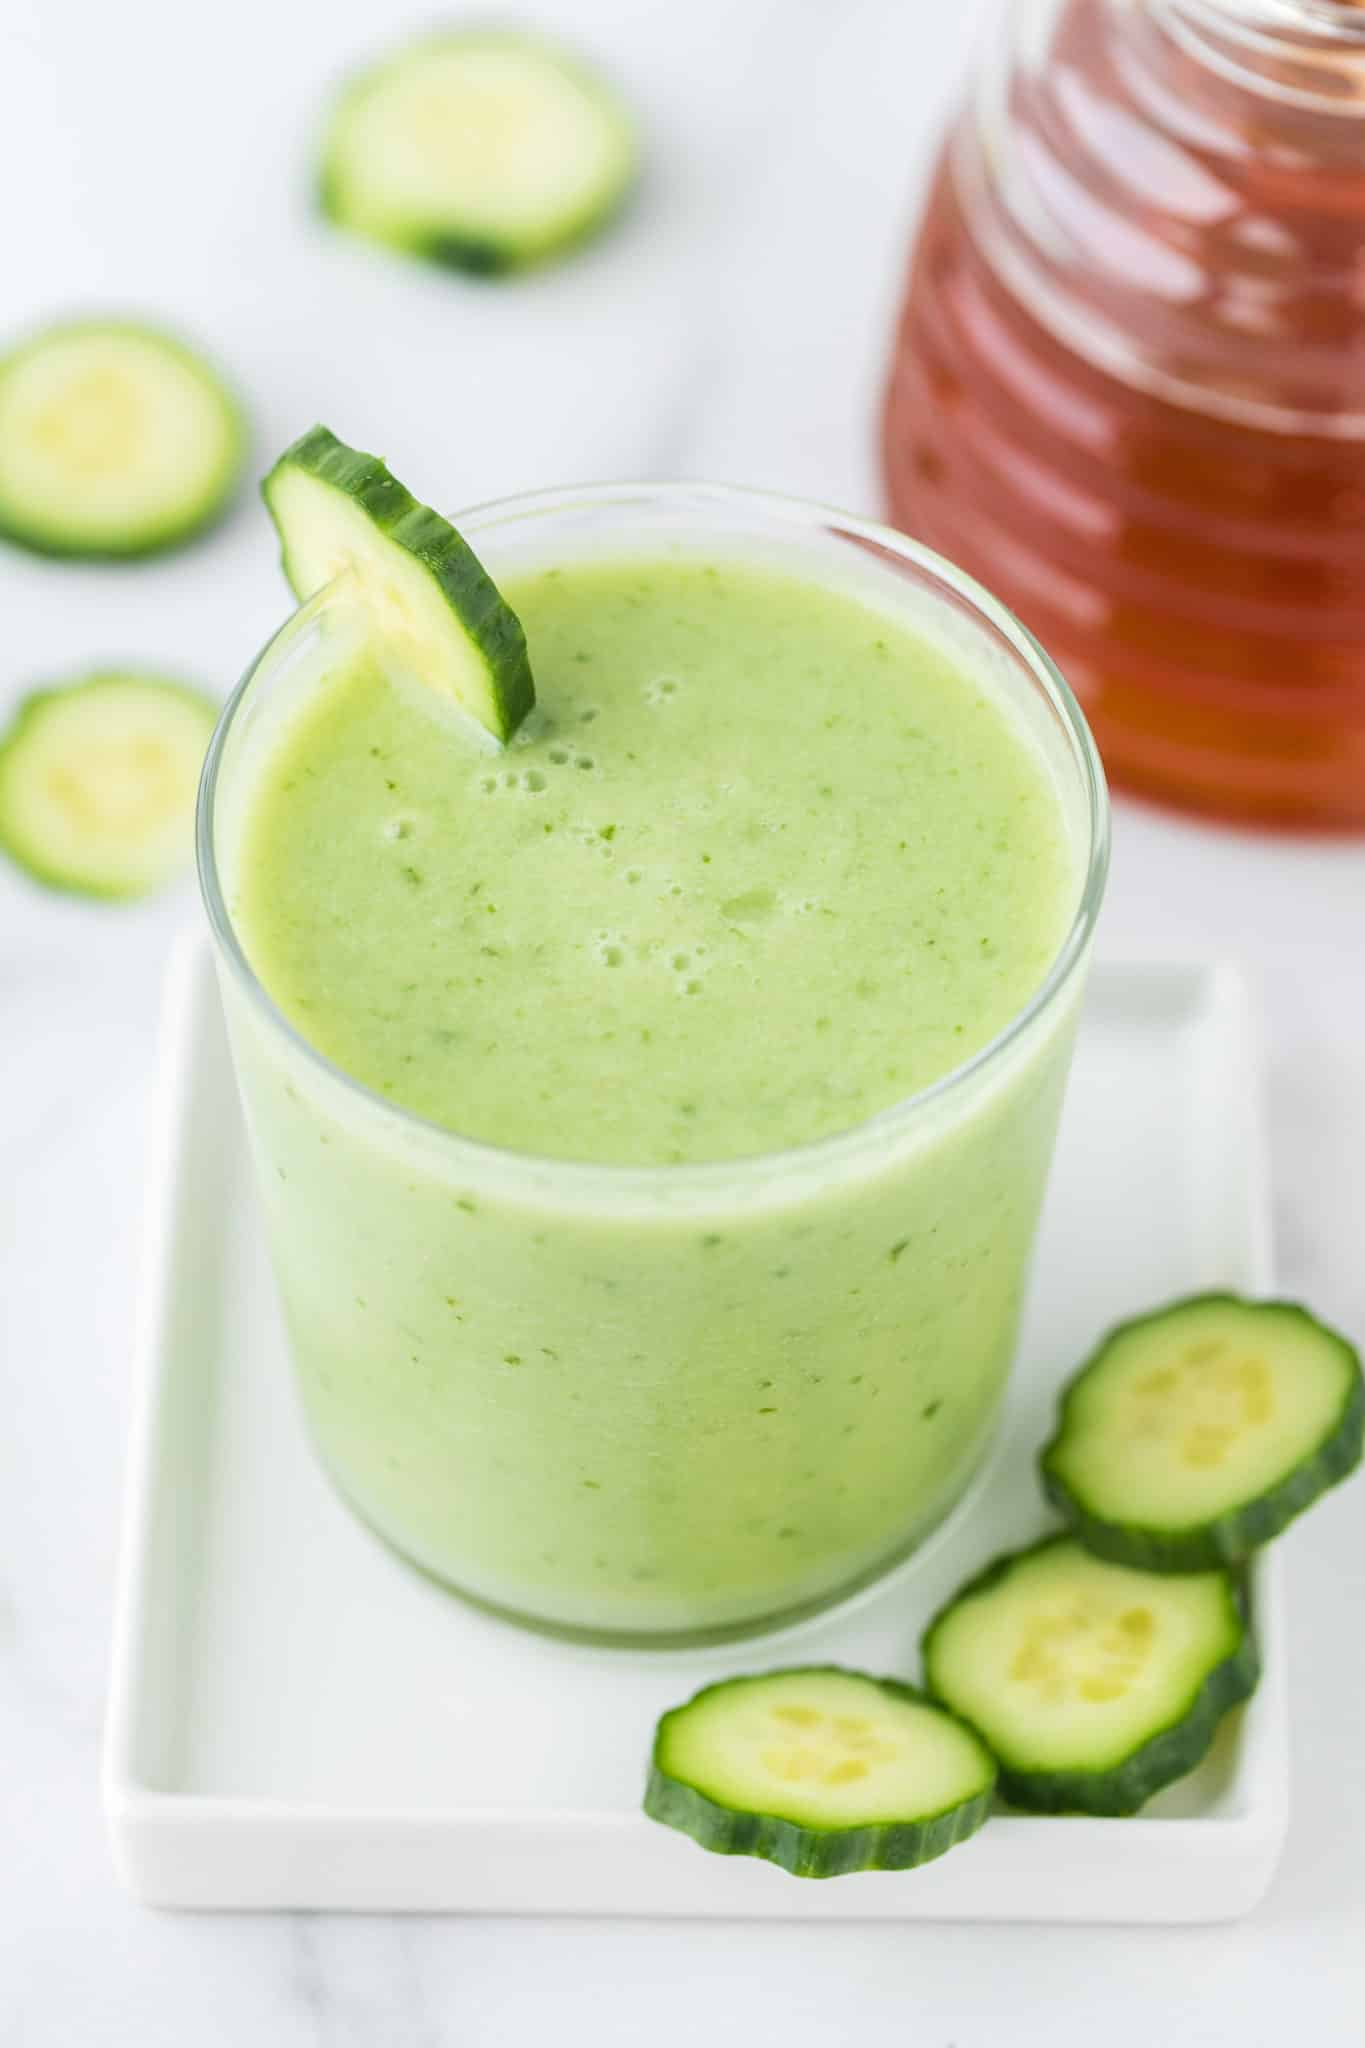 cucumber smoothie served in a glass with slices of fresh cucumber